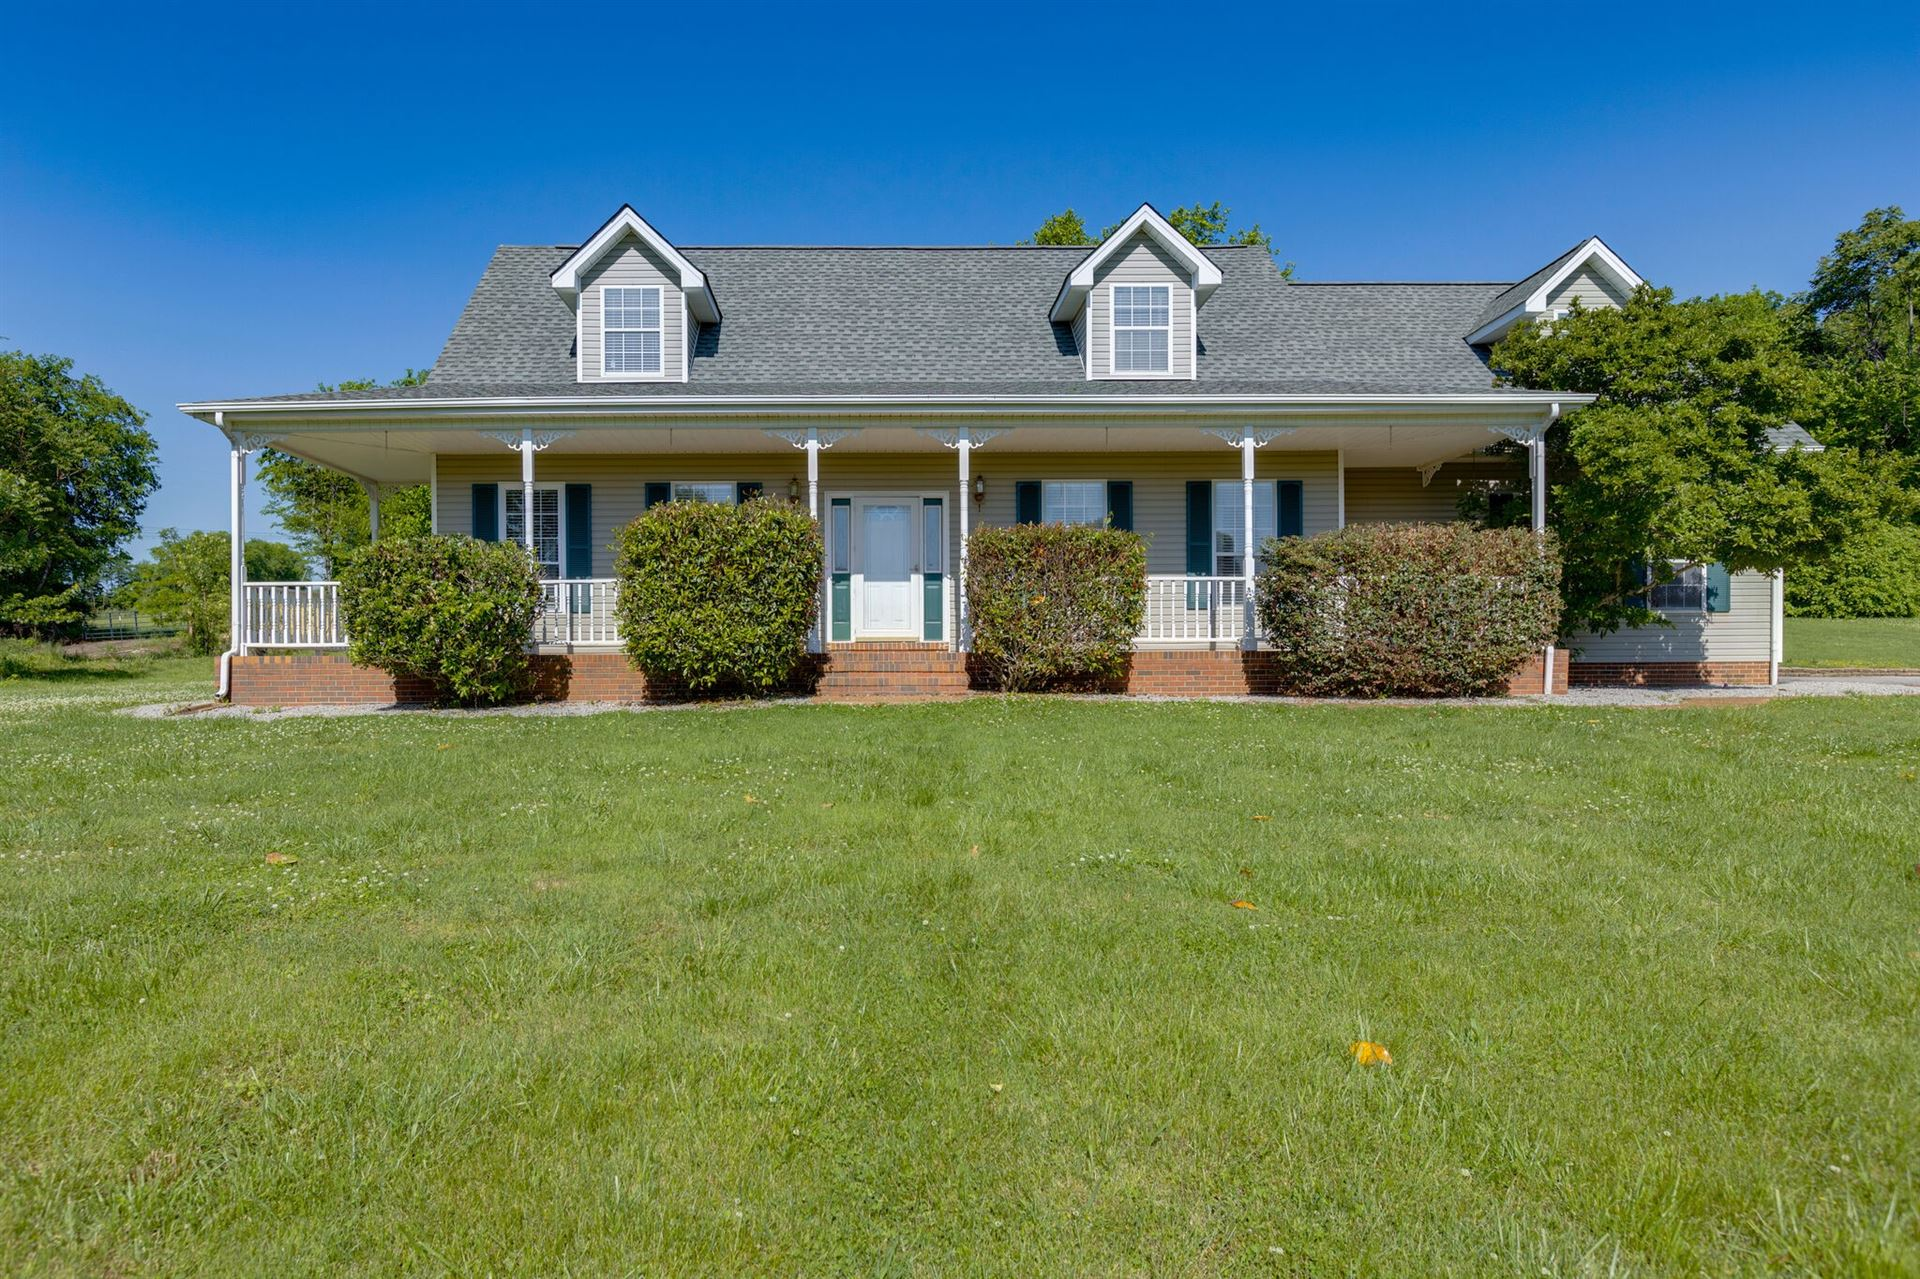 Photo of 1857 Clara Mathis Rd, Spring Hill, TN 37174 (MLS # 2252310)